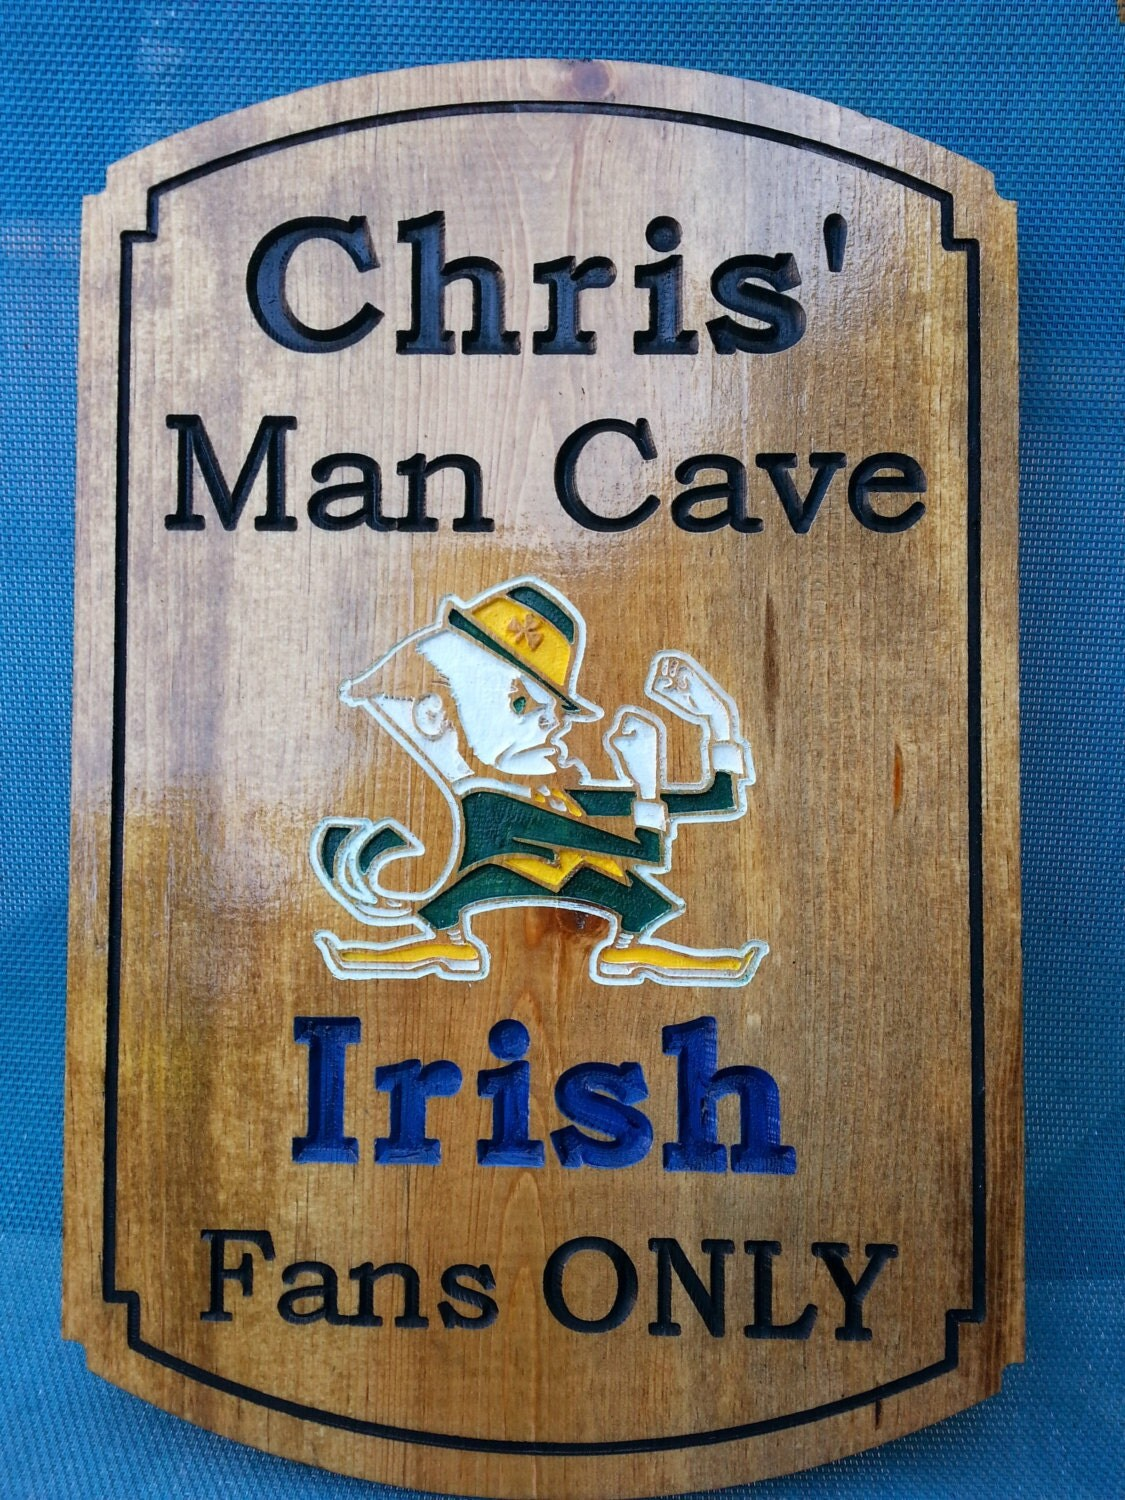 Personalized Man Cave Signs Etsy : Man cave ncaa college team sign custom by ocwoodcreations